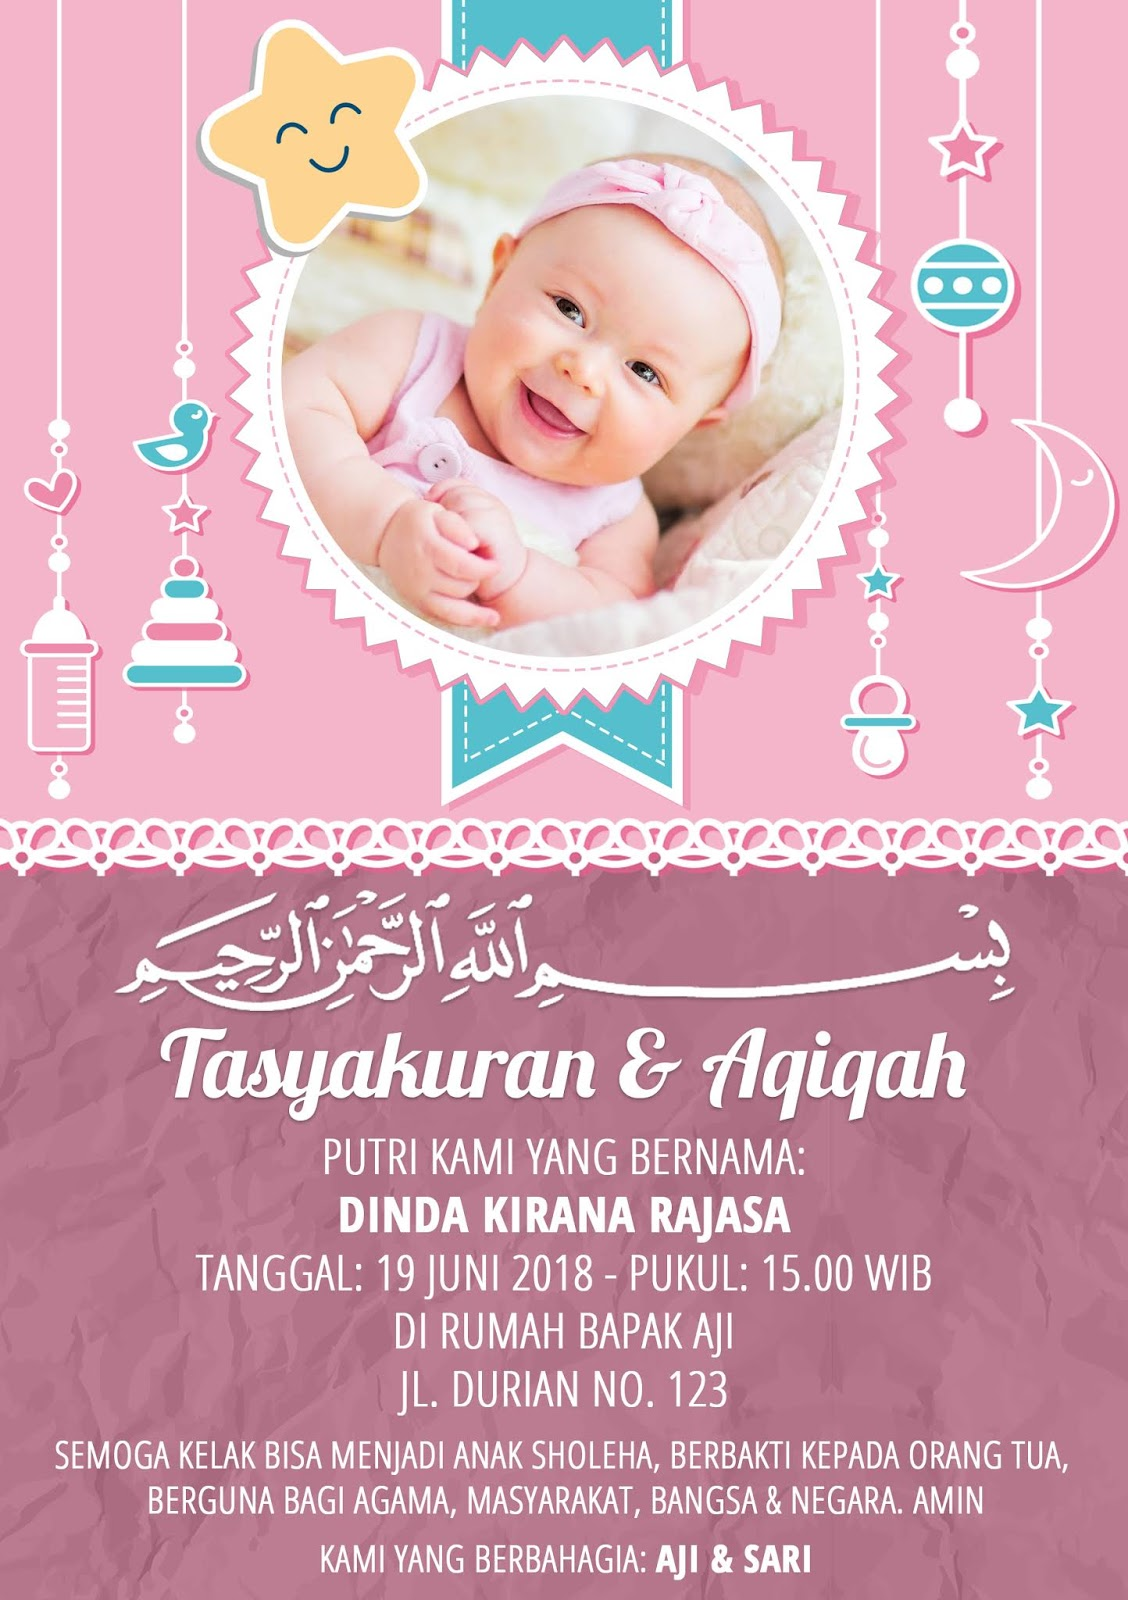 Download Template Undangan Aqiqah Photoshop | TUTORE.ORG ...